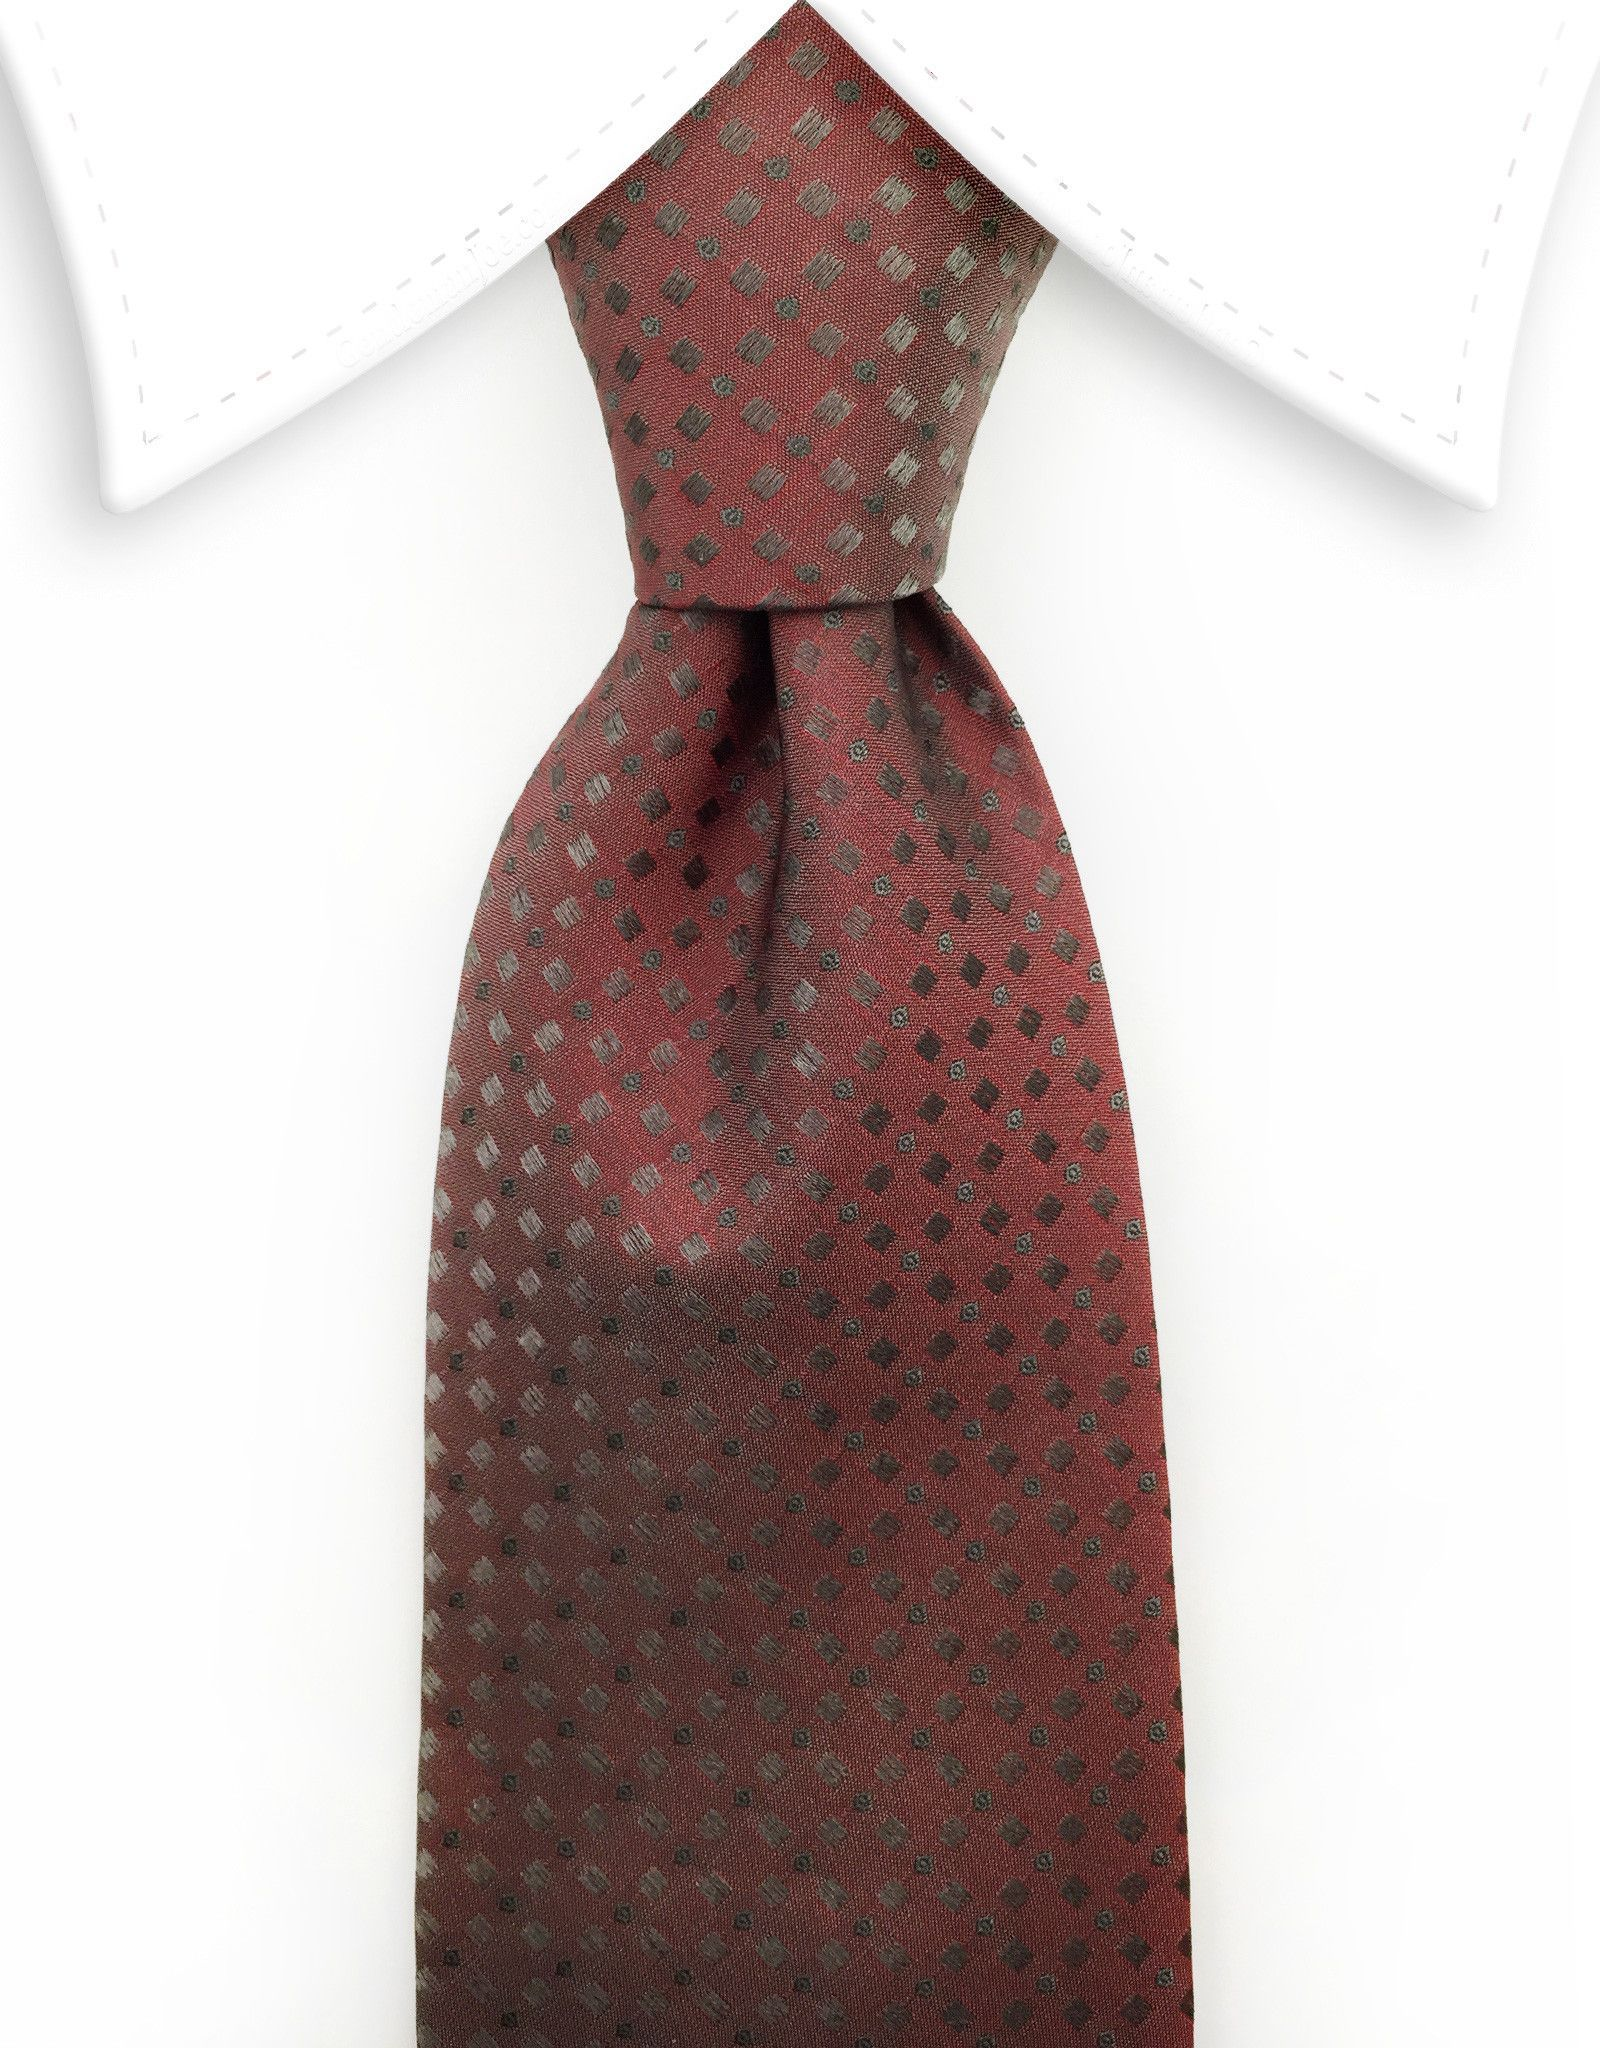 Muted Brick Red Tie With Diamonds His Accessories Tie Red